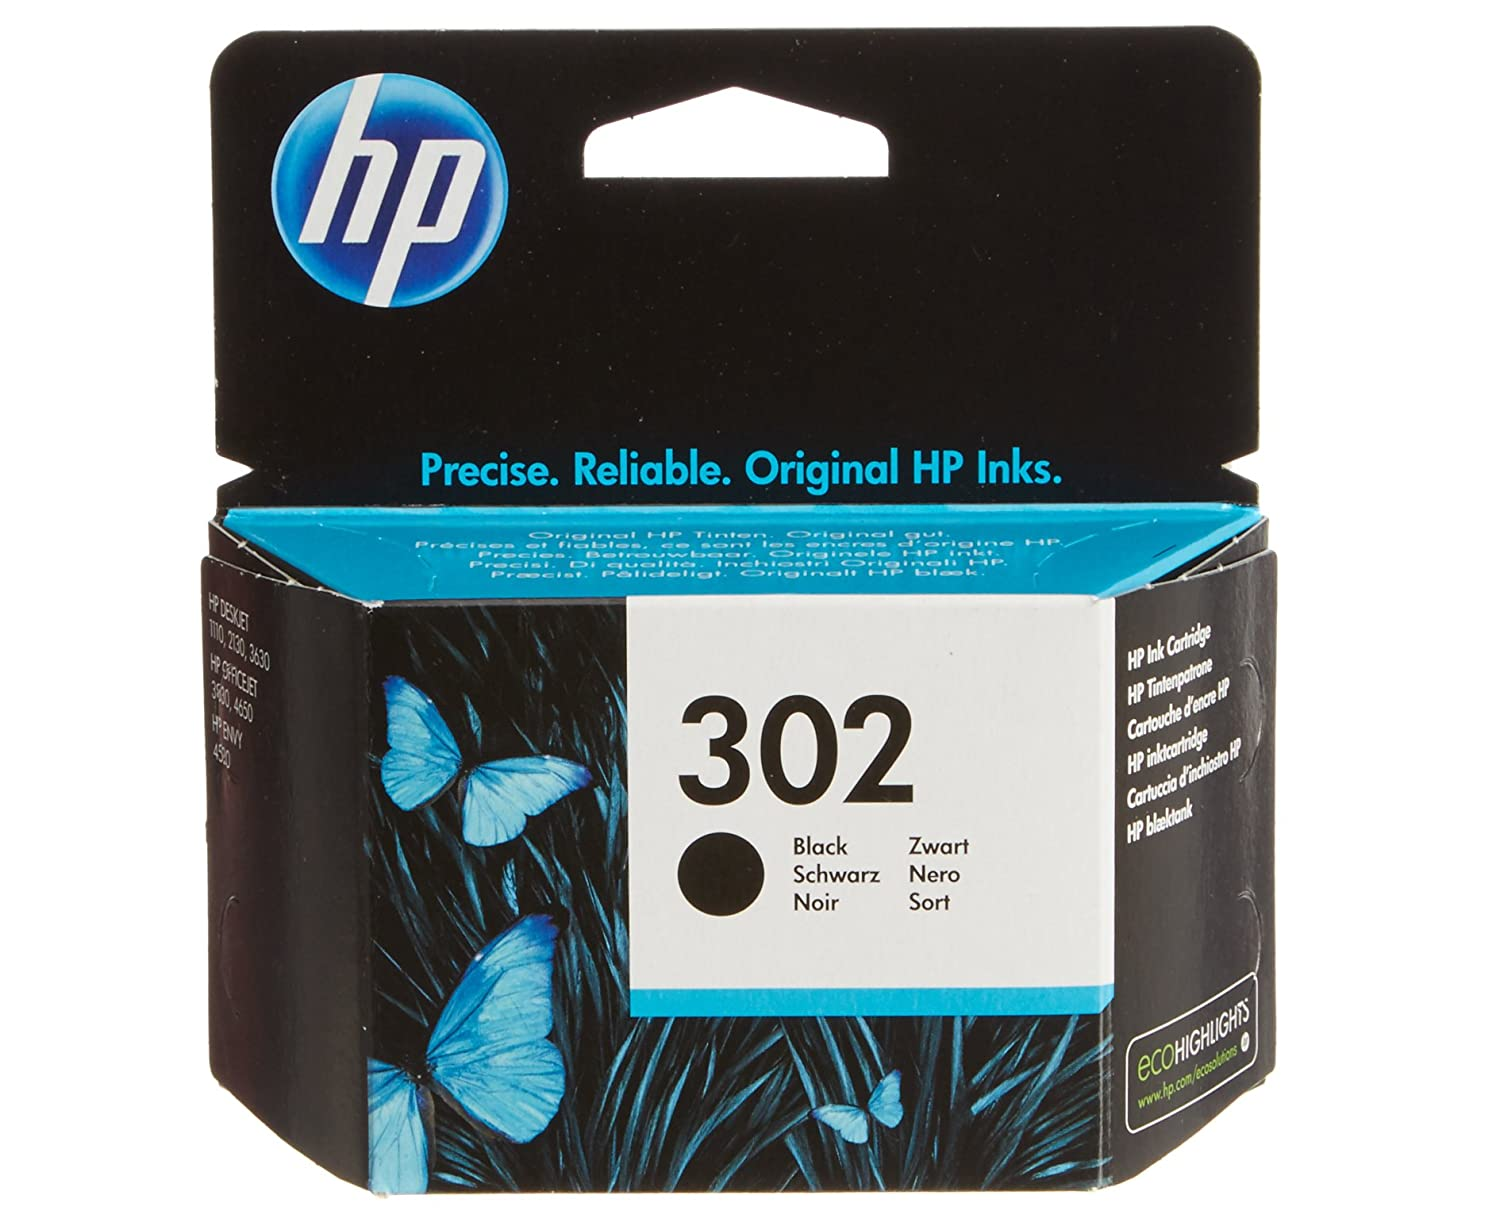 HP Black Original Ink Cartridge Cartucho de tinta para impresoras Negro Estándar